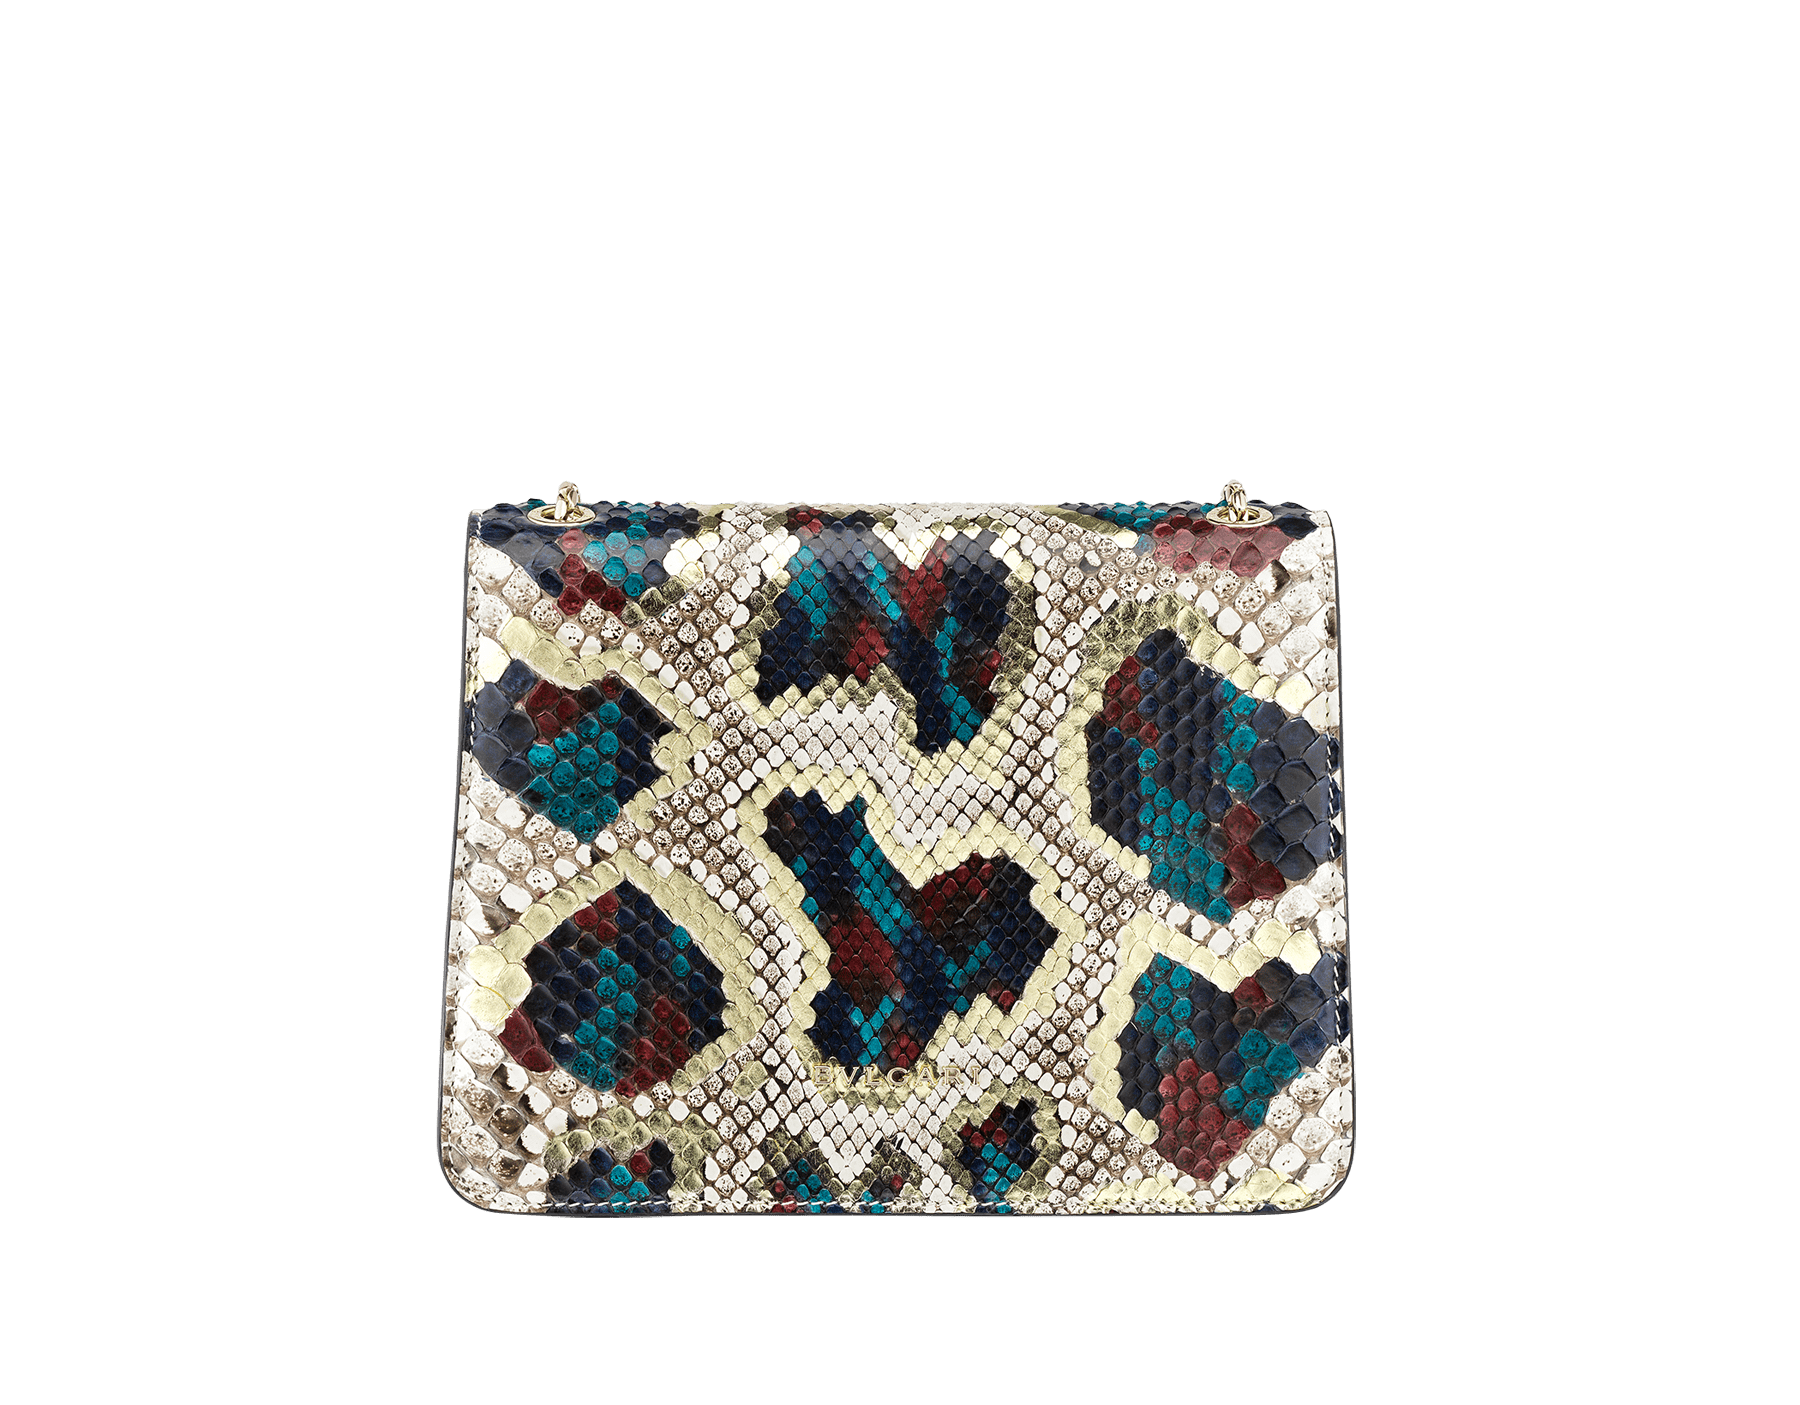 "Borsa a tracolla ""Serpenti Forever"" in pitone multicolore ""Magic Chromaline"". Iconica chiusura ""Serpenti"" in ottone placcato oro chiaro con squame in smalto bianco e nero e occhi in onice nera. 422-Pc image 3"